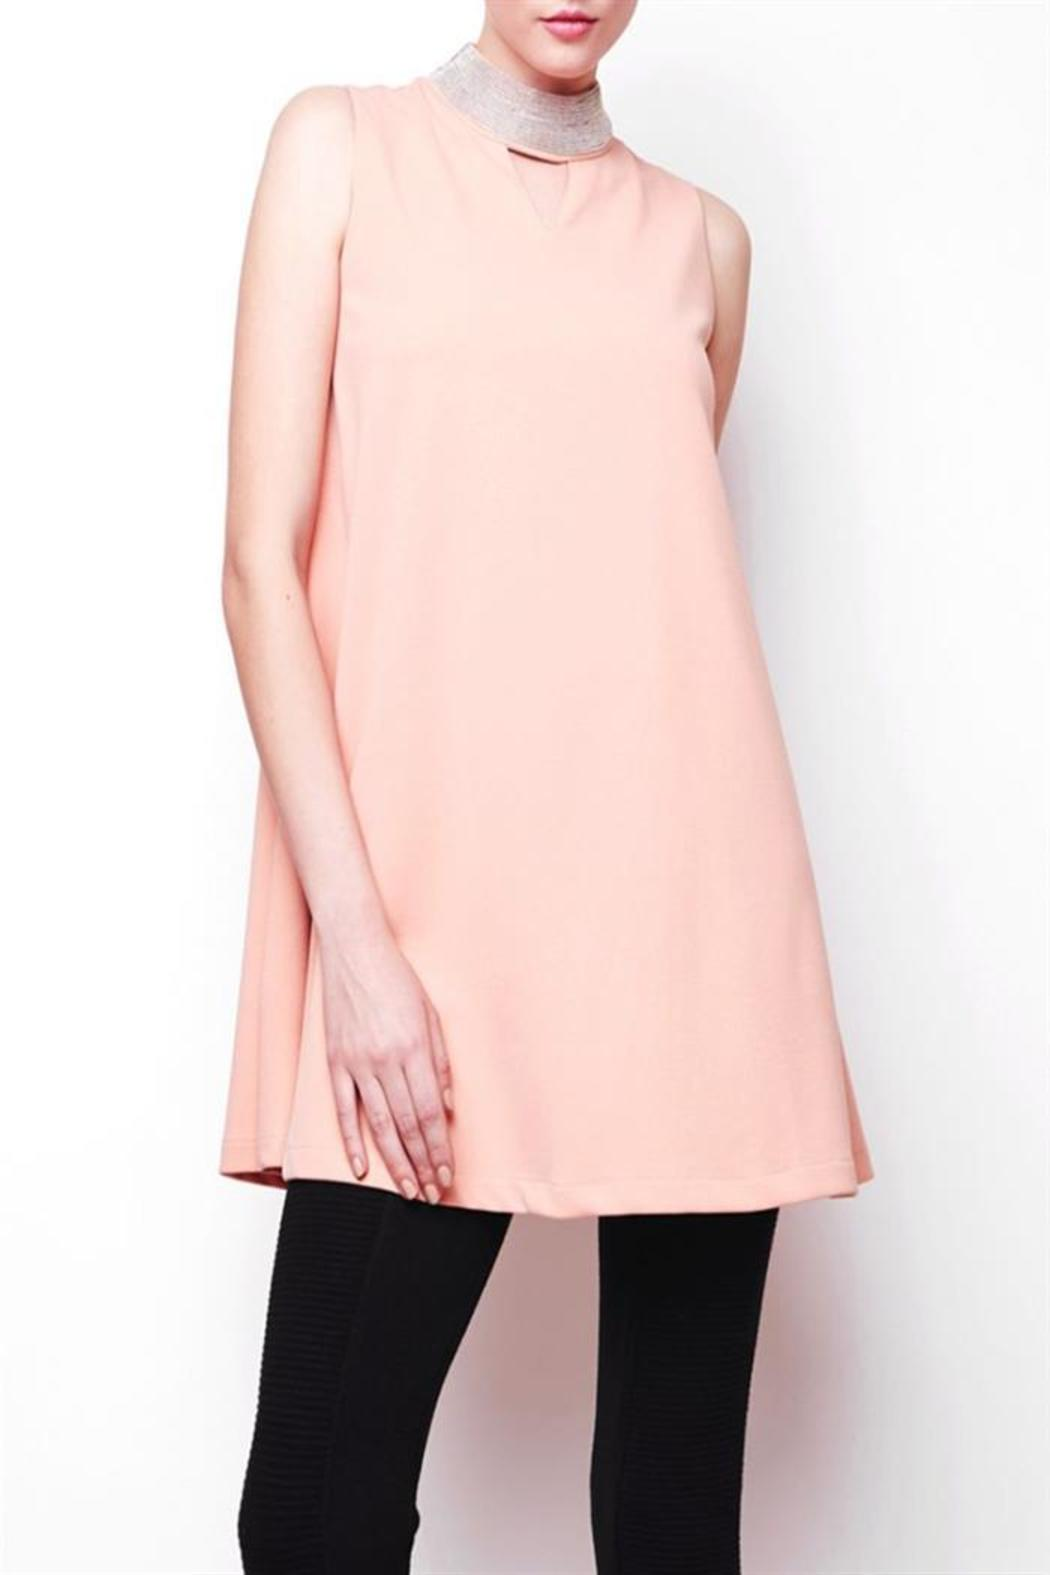 Gracia Stud Neck Flair Dress - Front Cropped Image